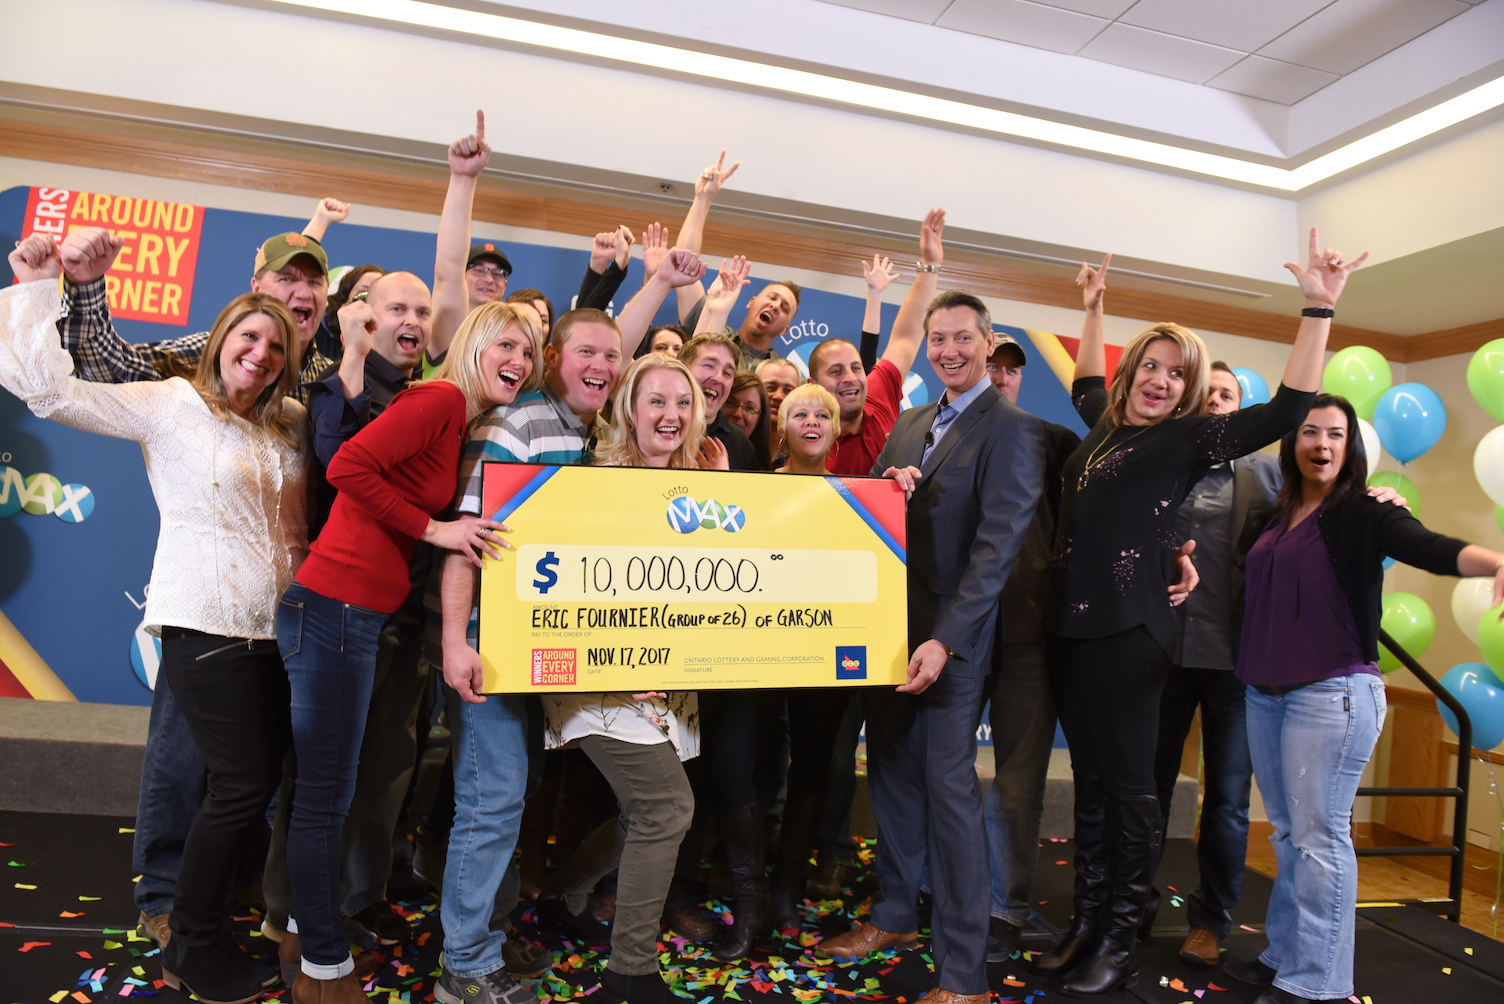 Garson lottery winners: Friends who gamble together stick together